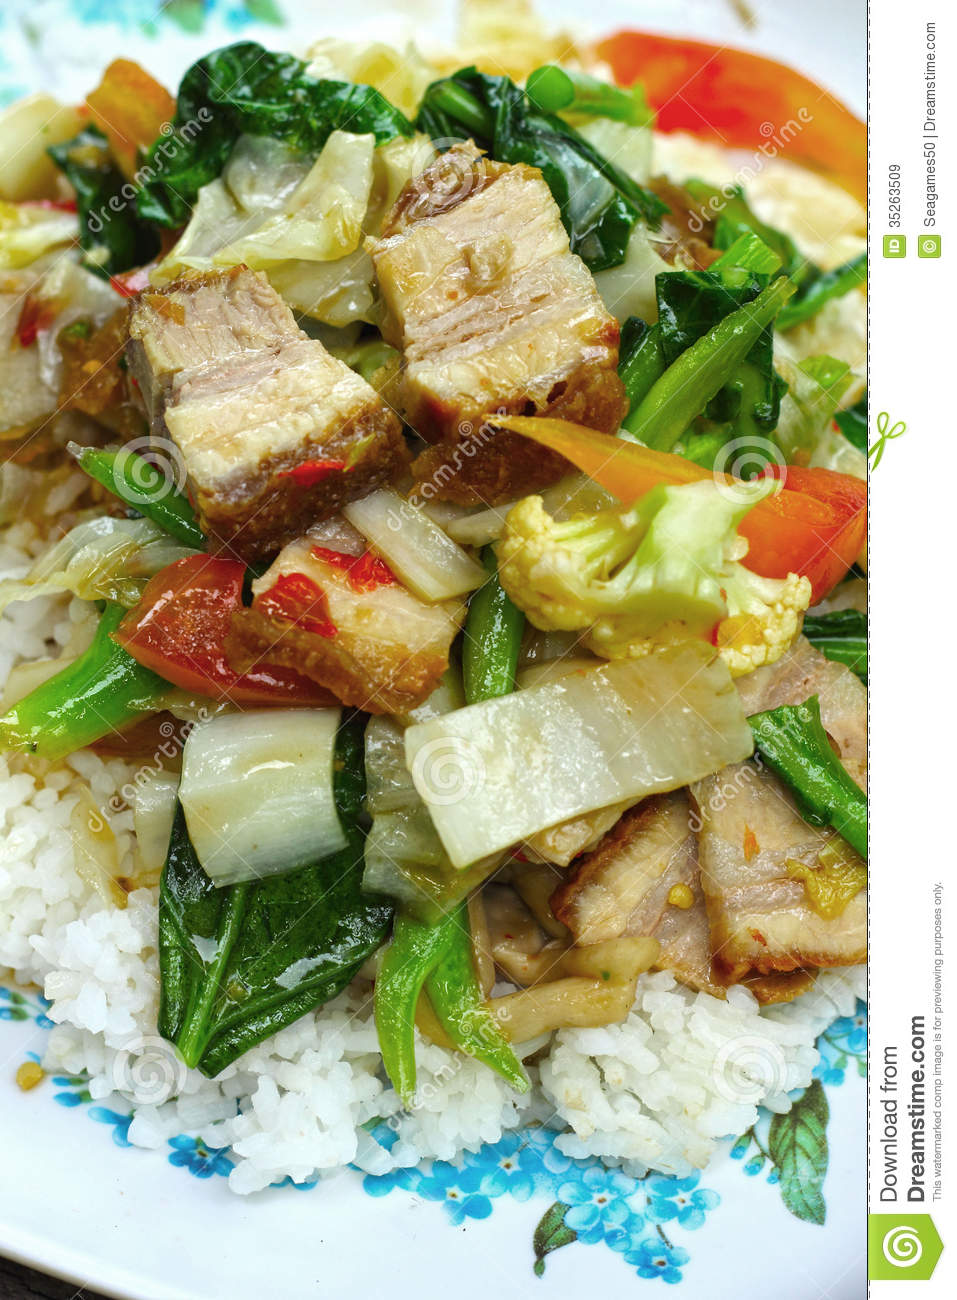 Crispy Roasted Pork Stir Fry With Vegetables And Rice  Stock Image